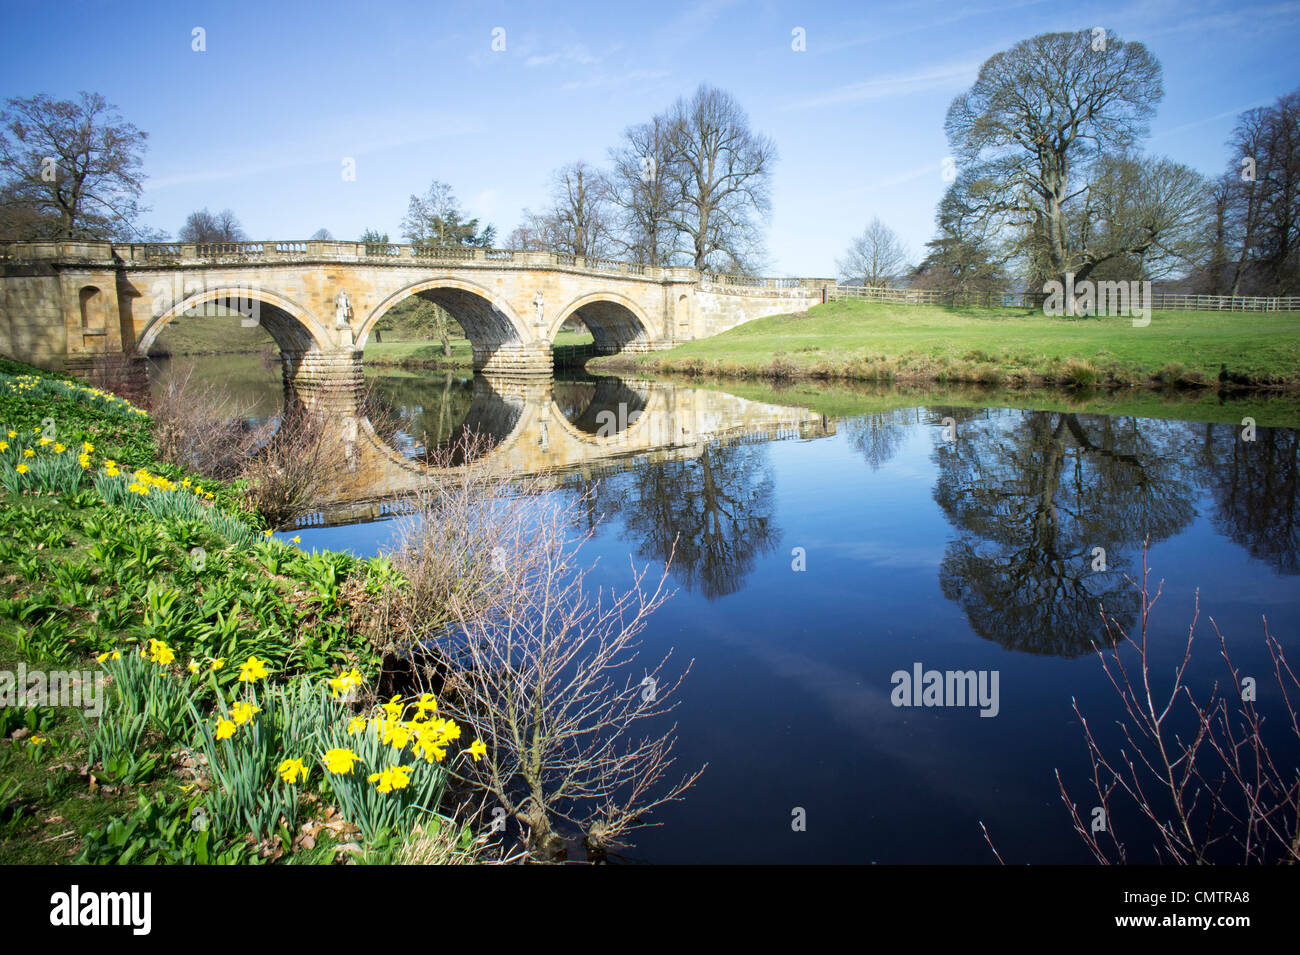 River Derwent and bridge in March at Chatsworth House - Stock Image